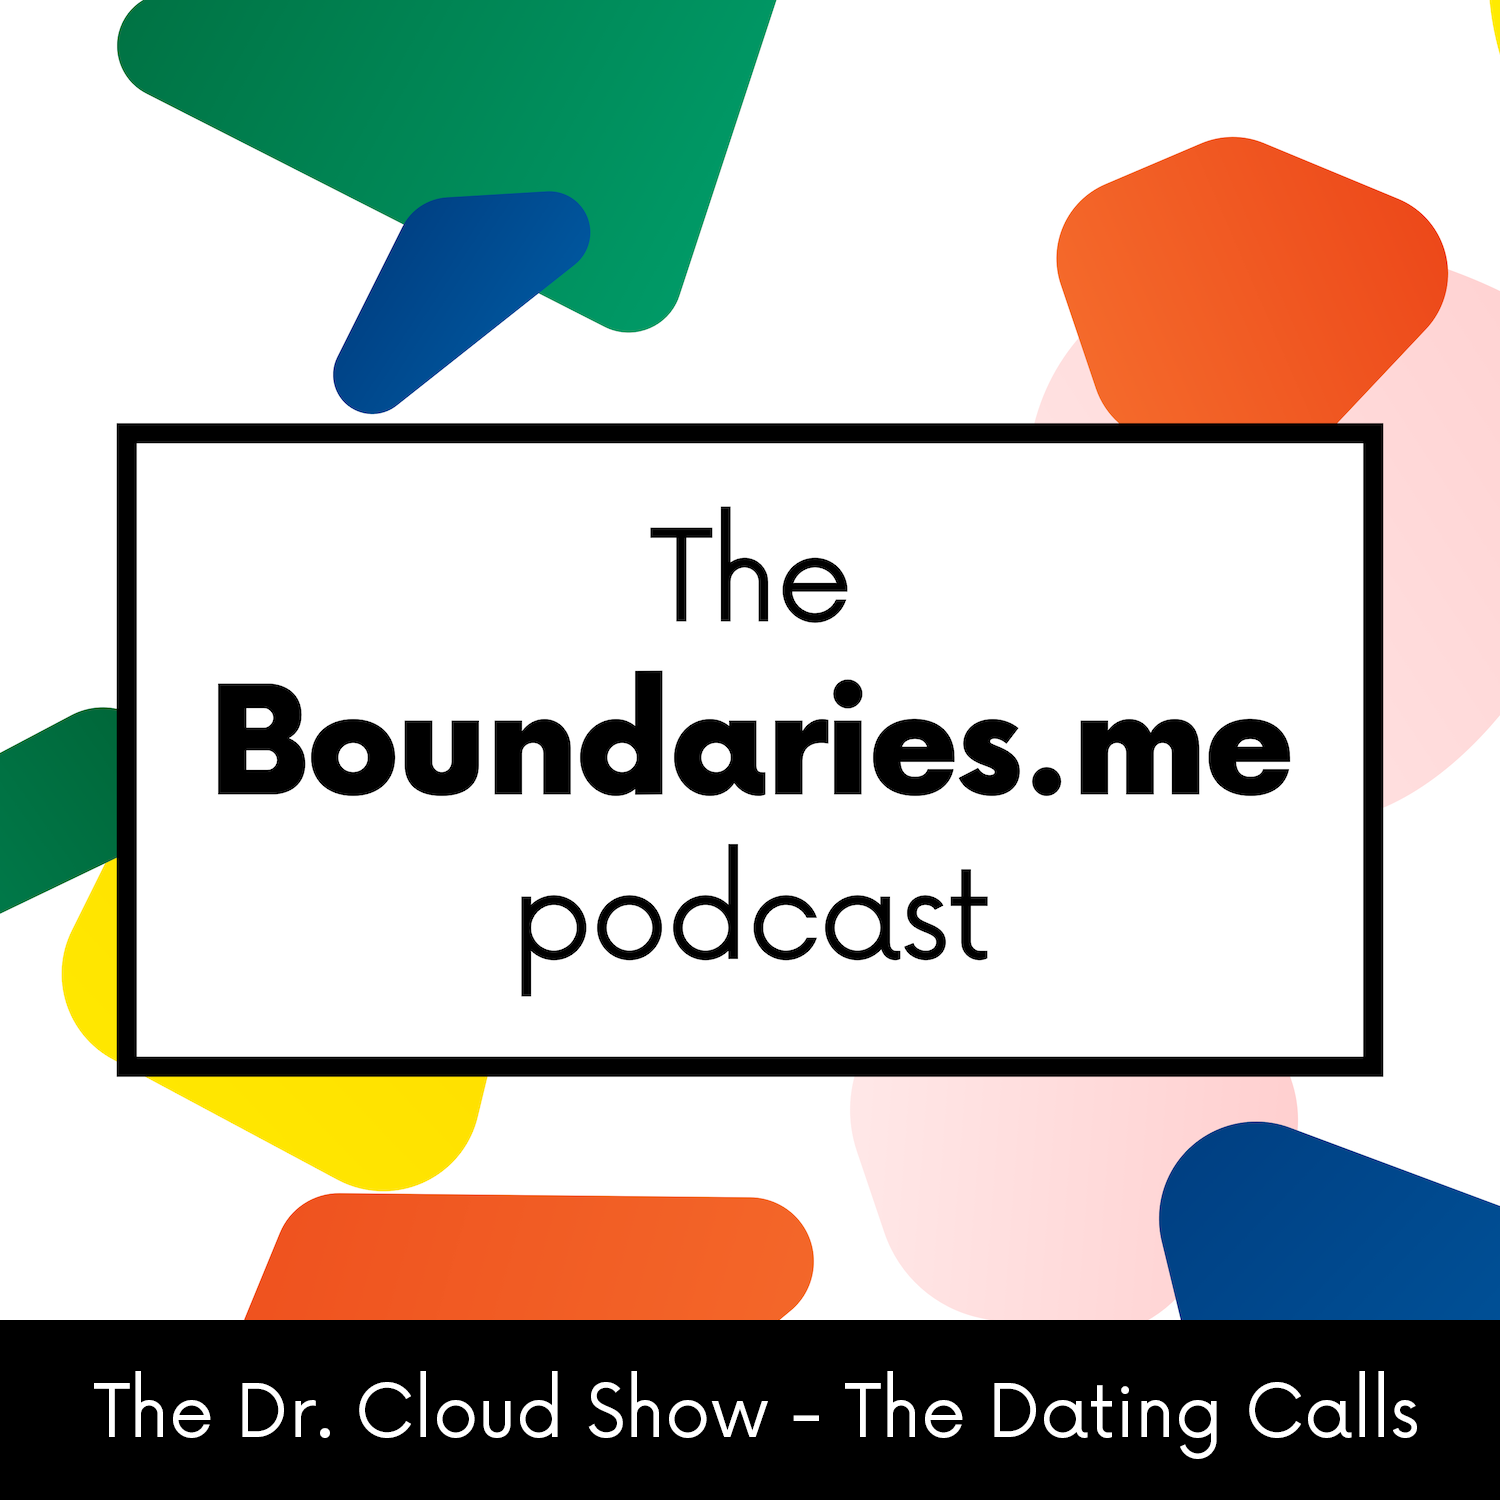 Episode 143 - The Dr. Cloud Show - Best of the Dating Calls - Collection No. 1